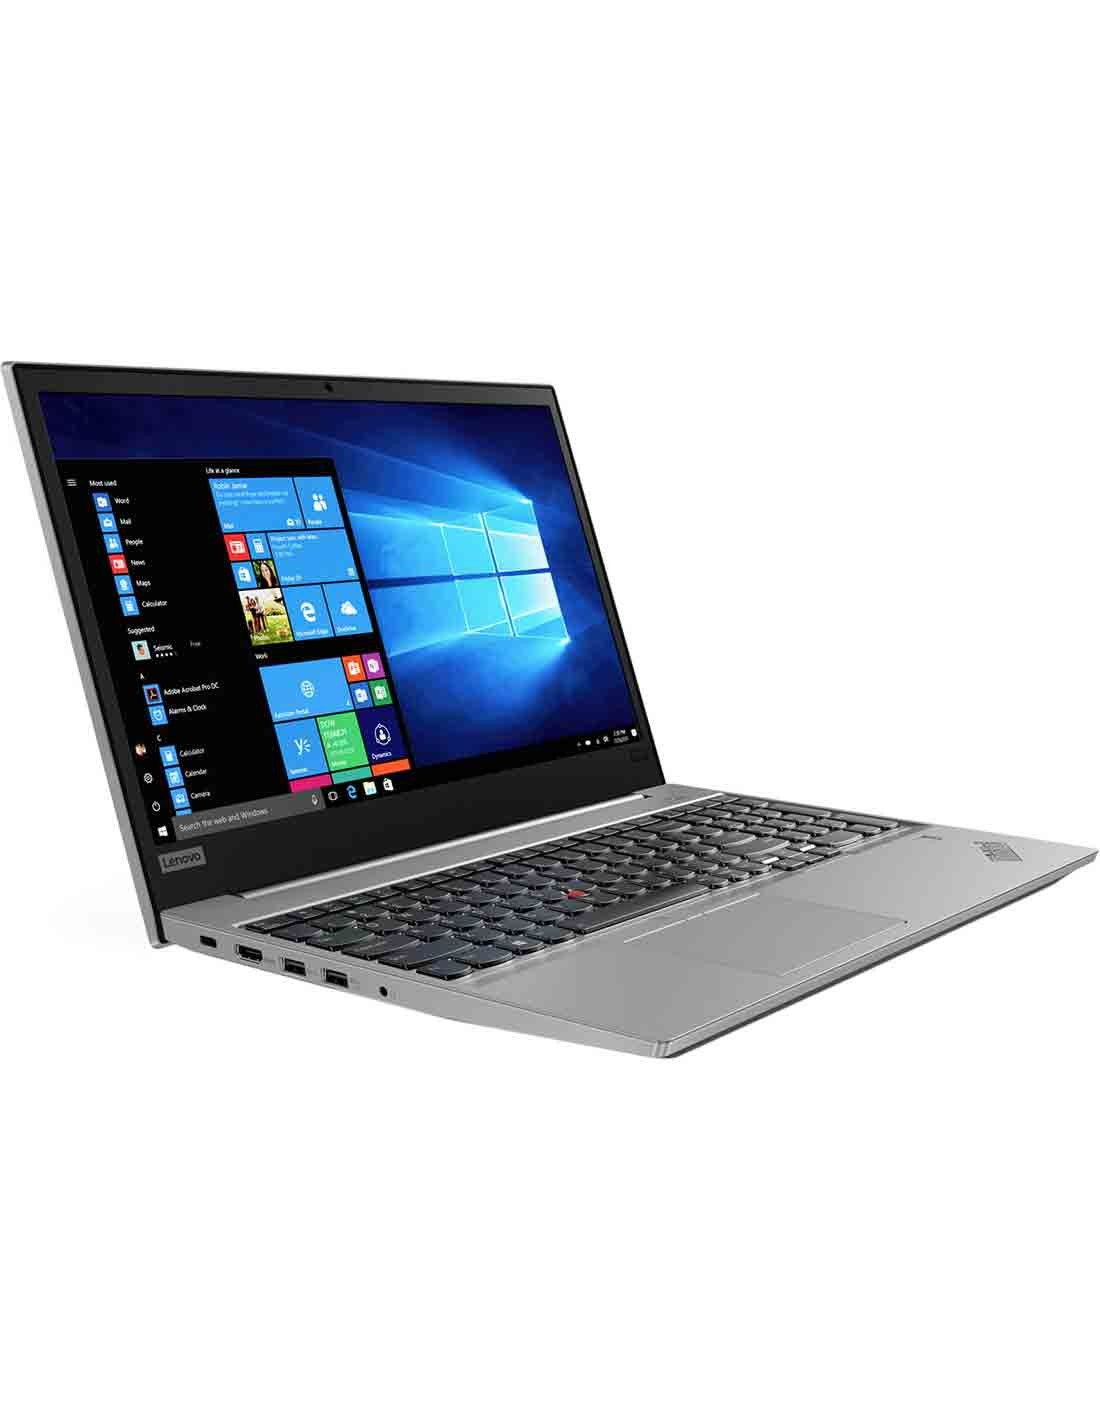 ThinkPad E580 Core i7 Silver at a cheap price and free delivery in Dubai